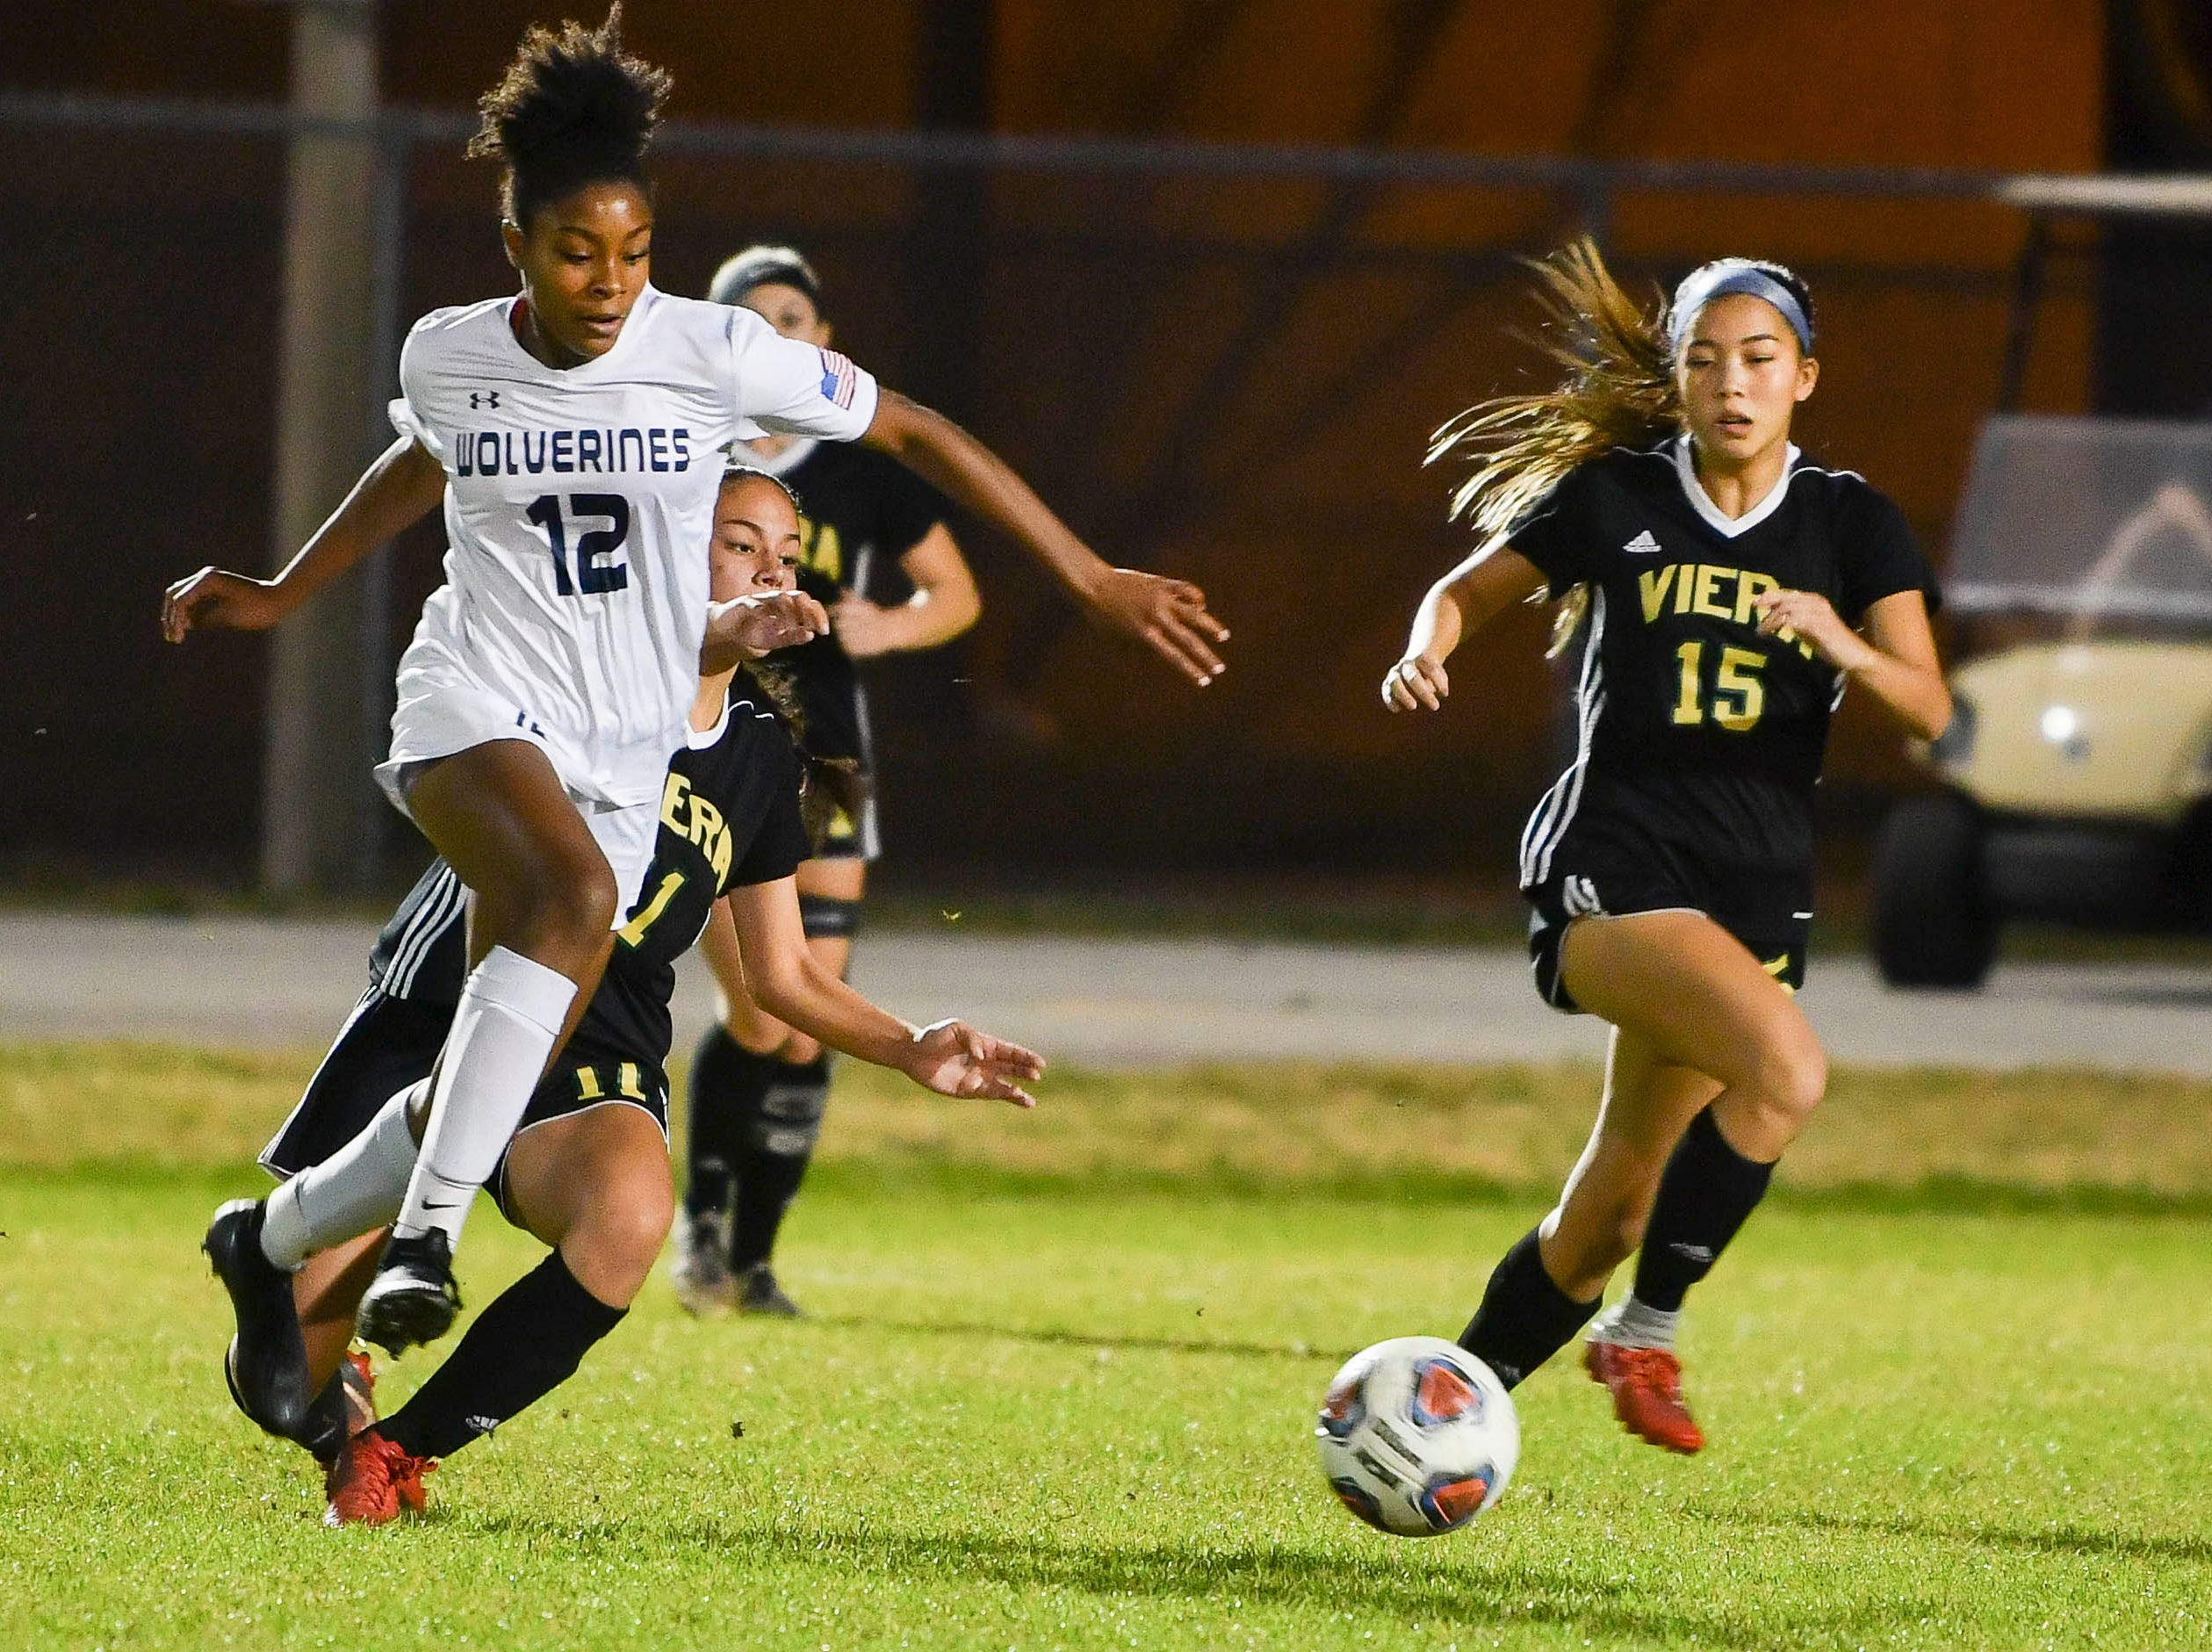 Chloe Washington of Windermere drives downfield during Tuesday's Regional Quarterfinal game at Viera High School